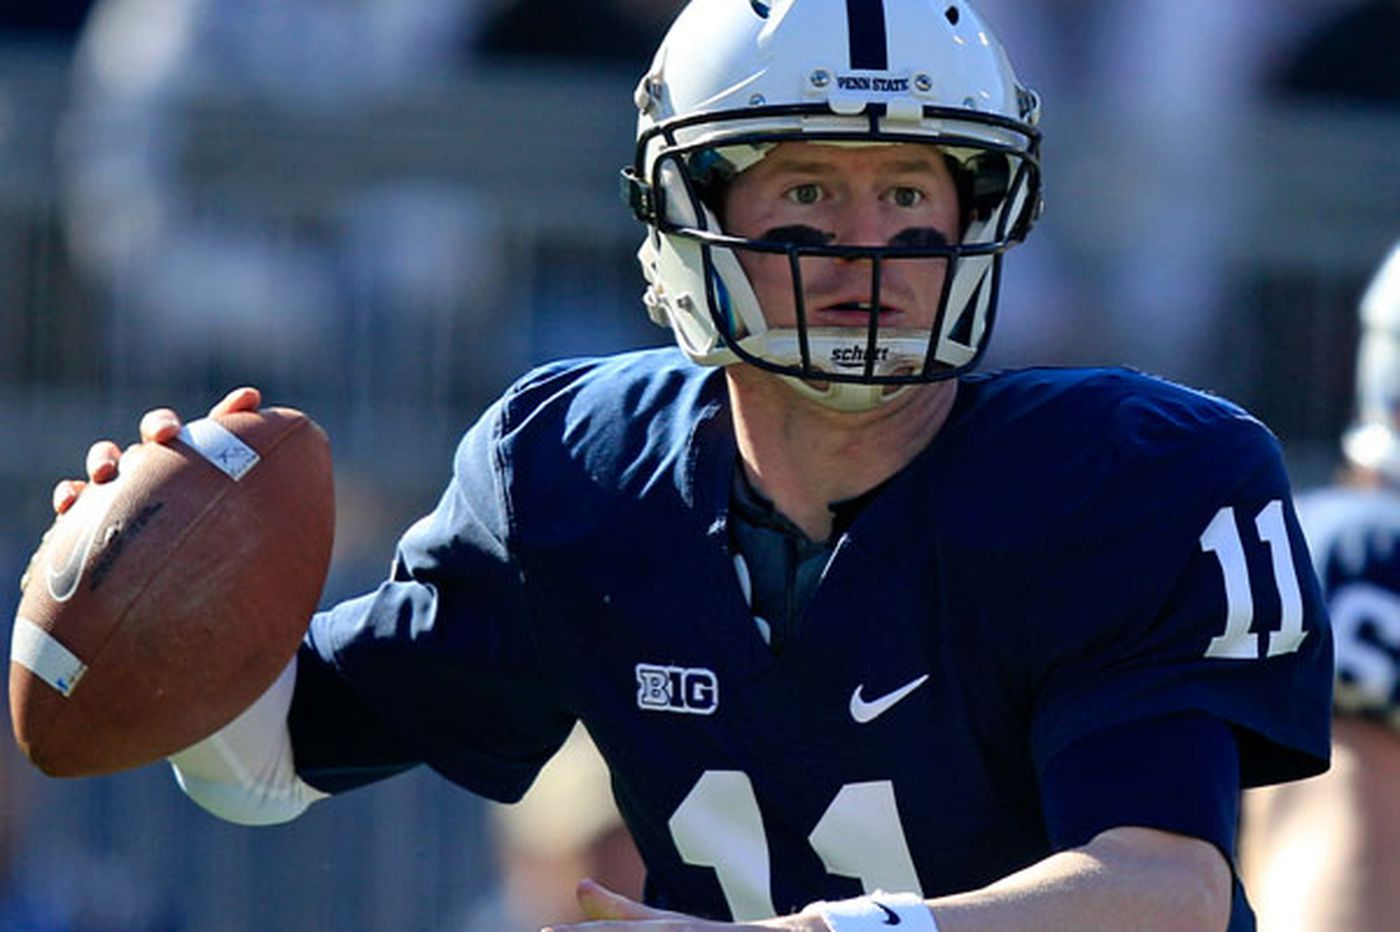 Sports in Brief: Ex-Penn State QB McGloin signs with Raiders